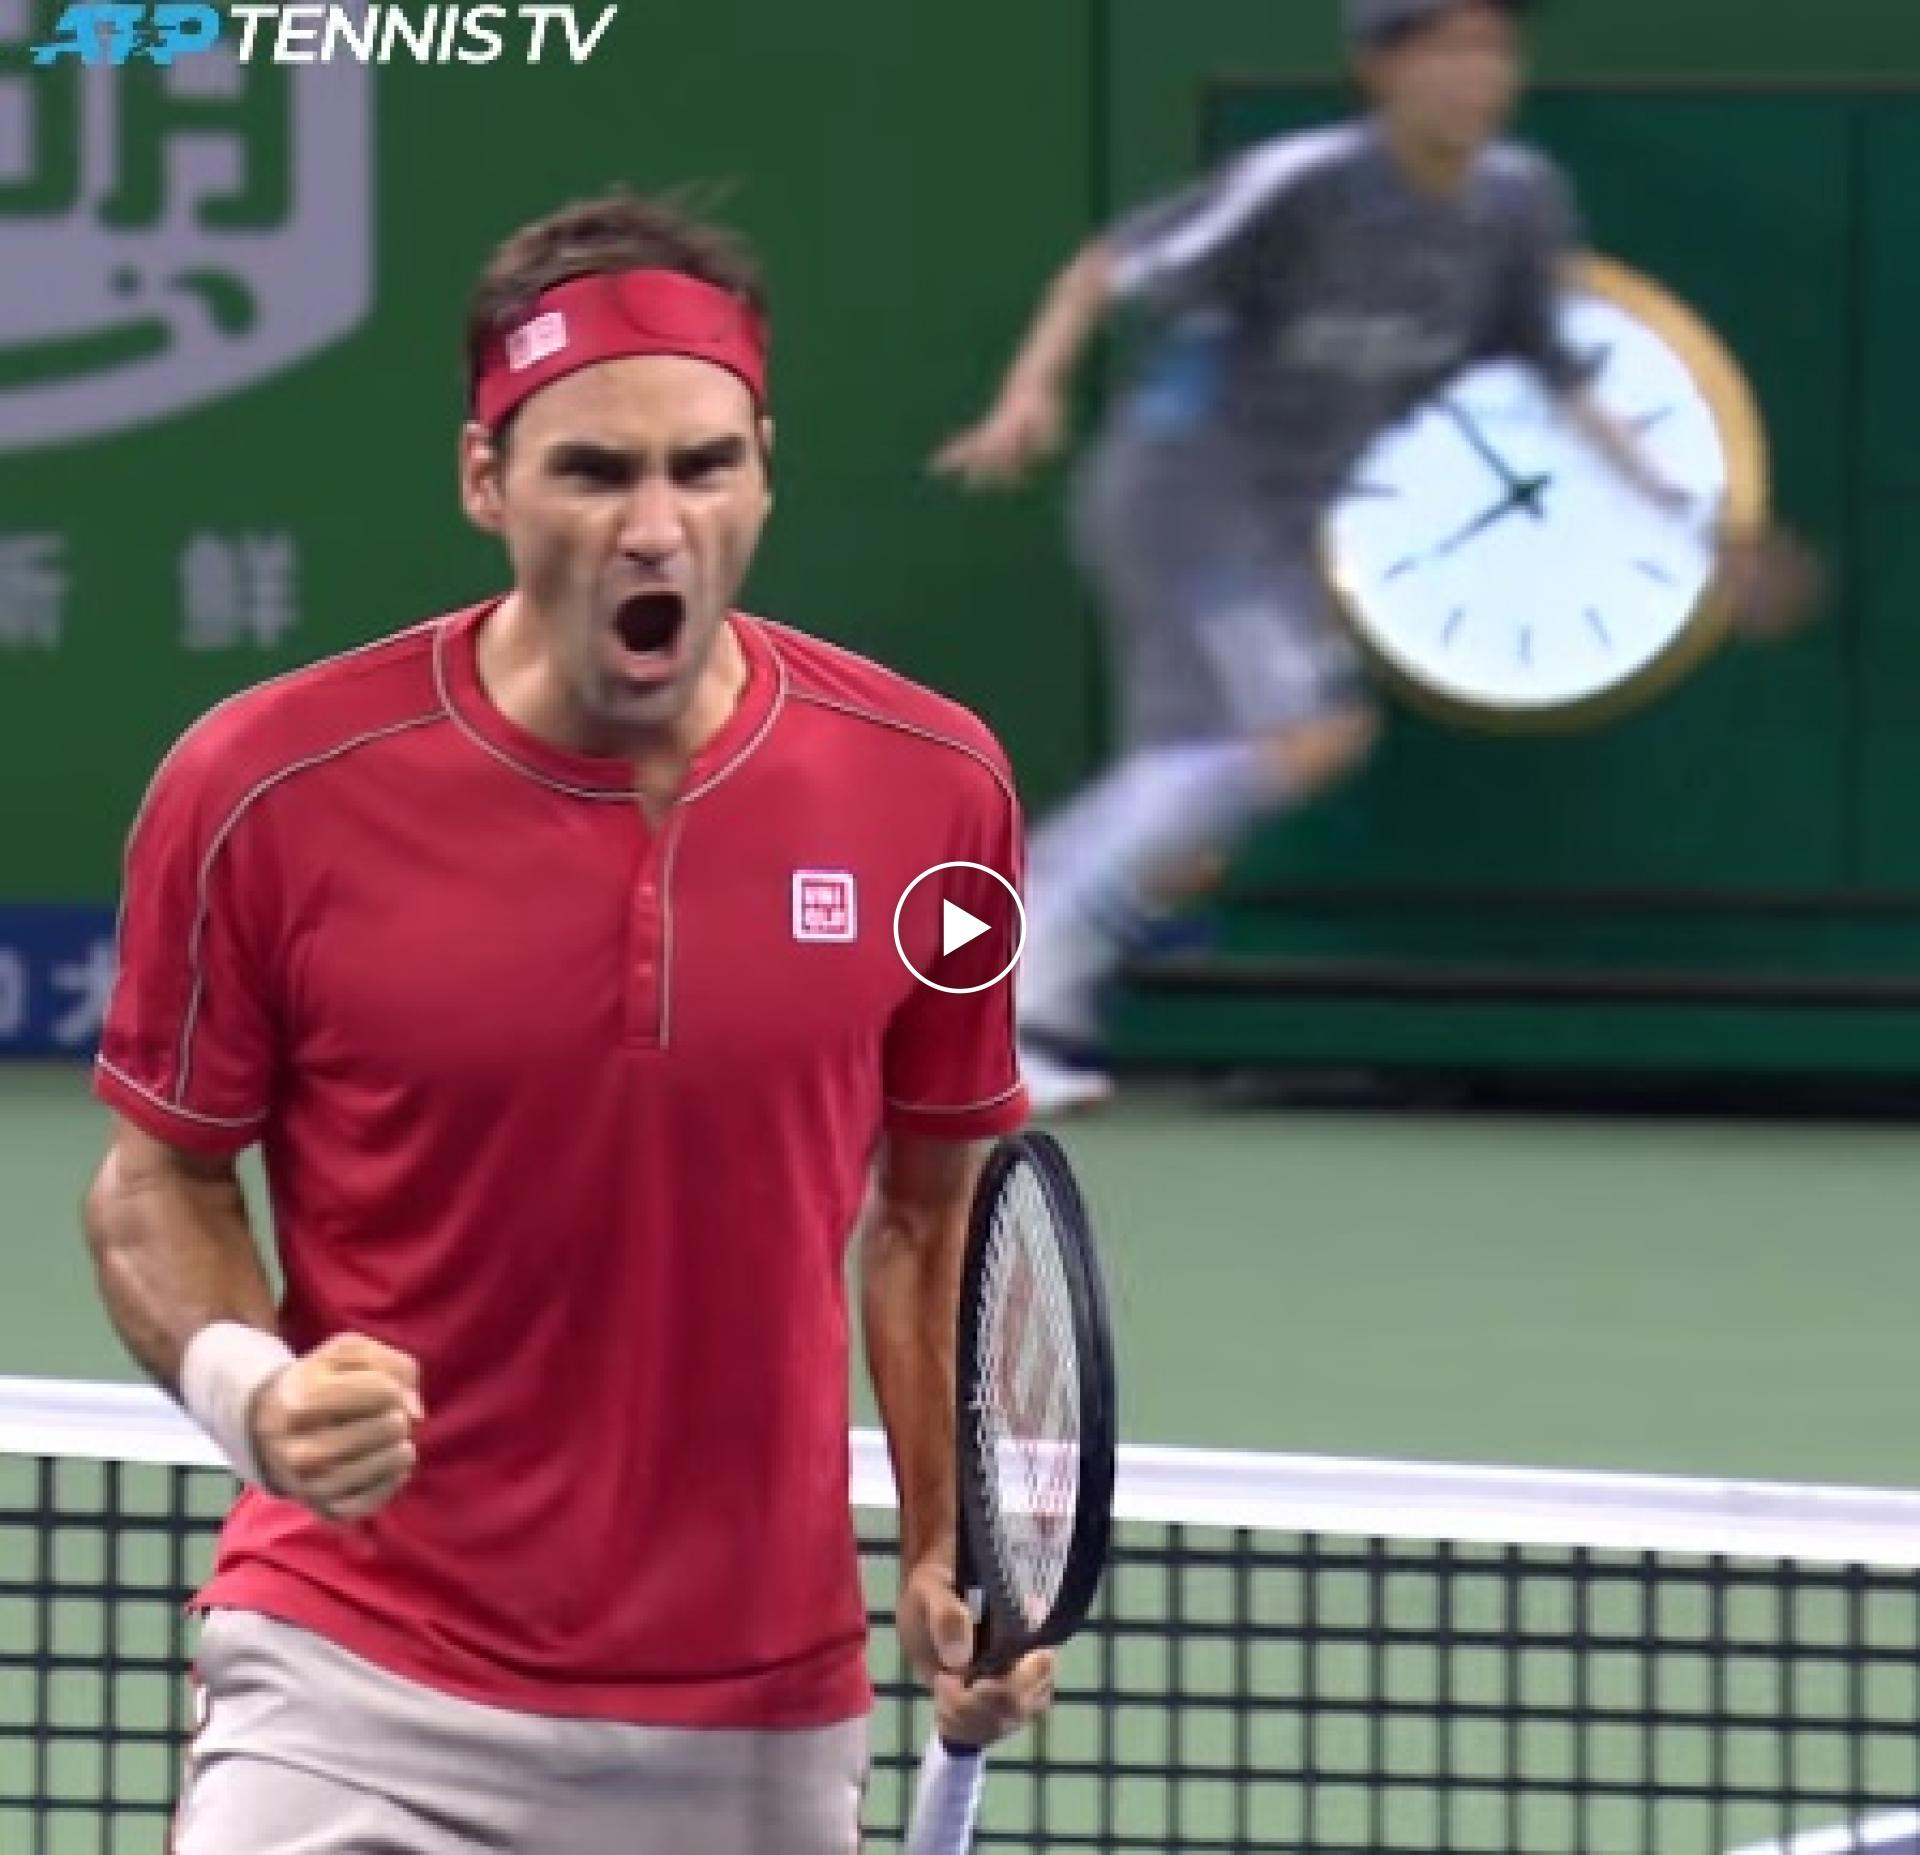 Epic drama: Federer saves five match points against Zverev